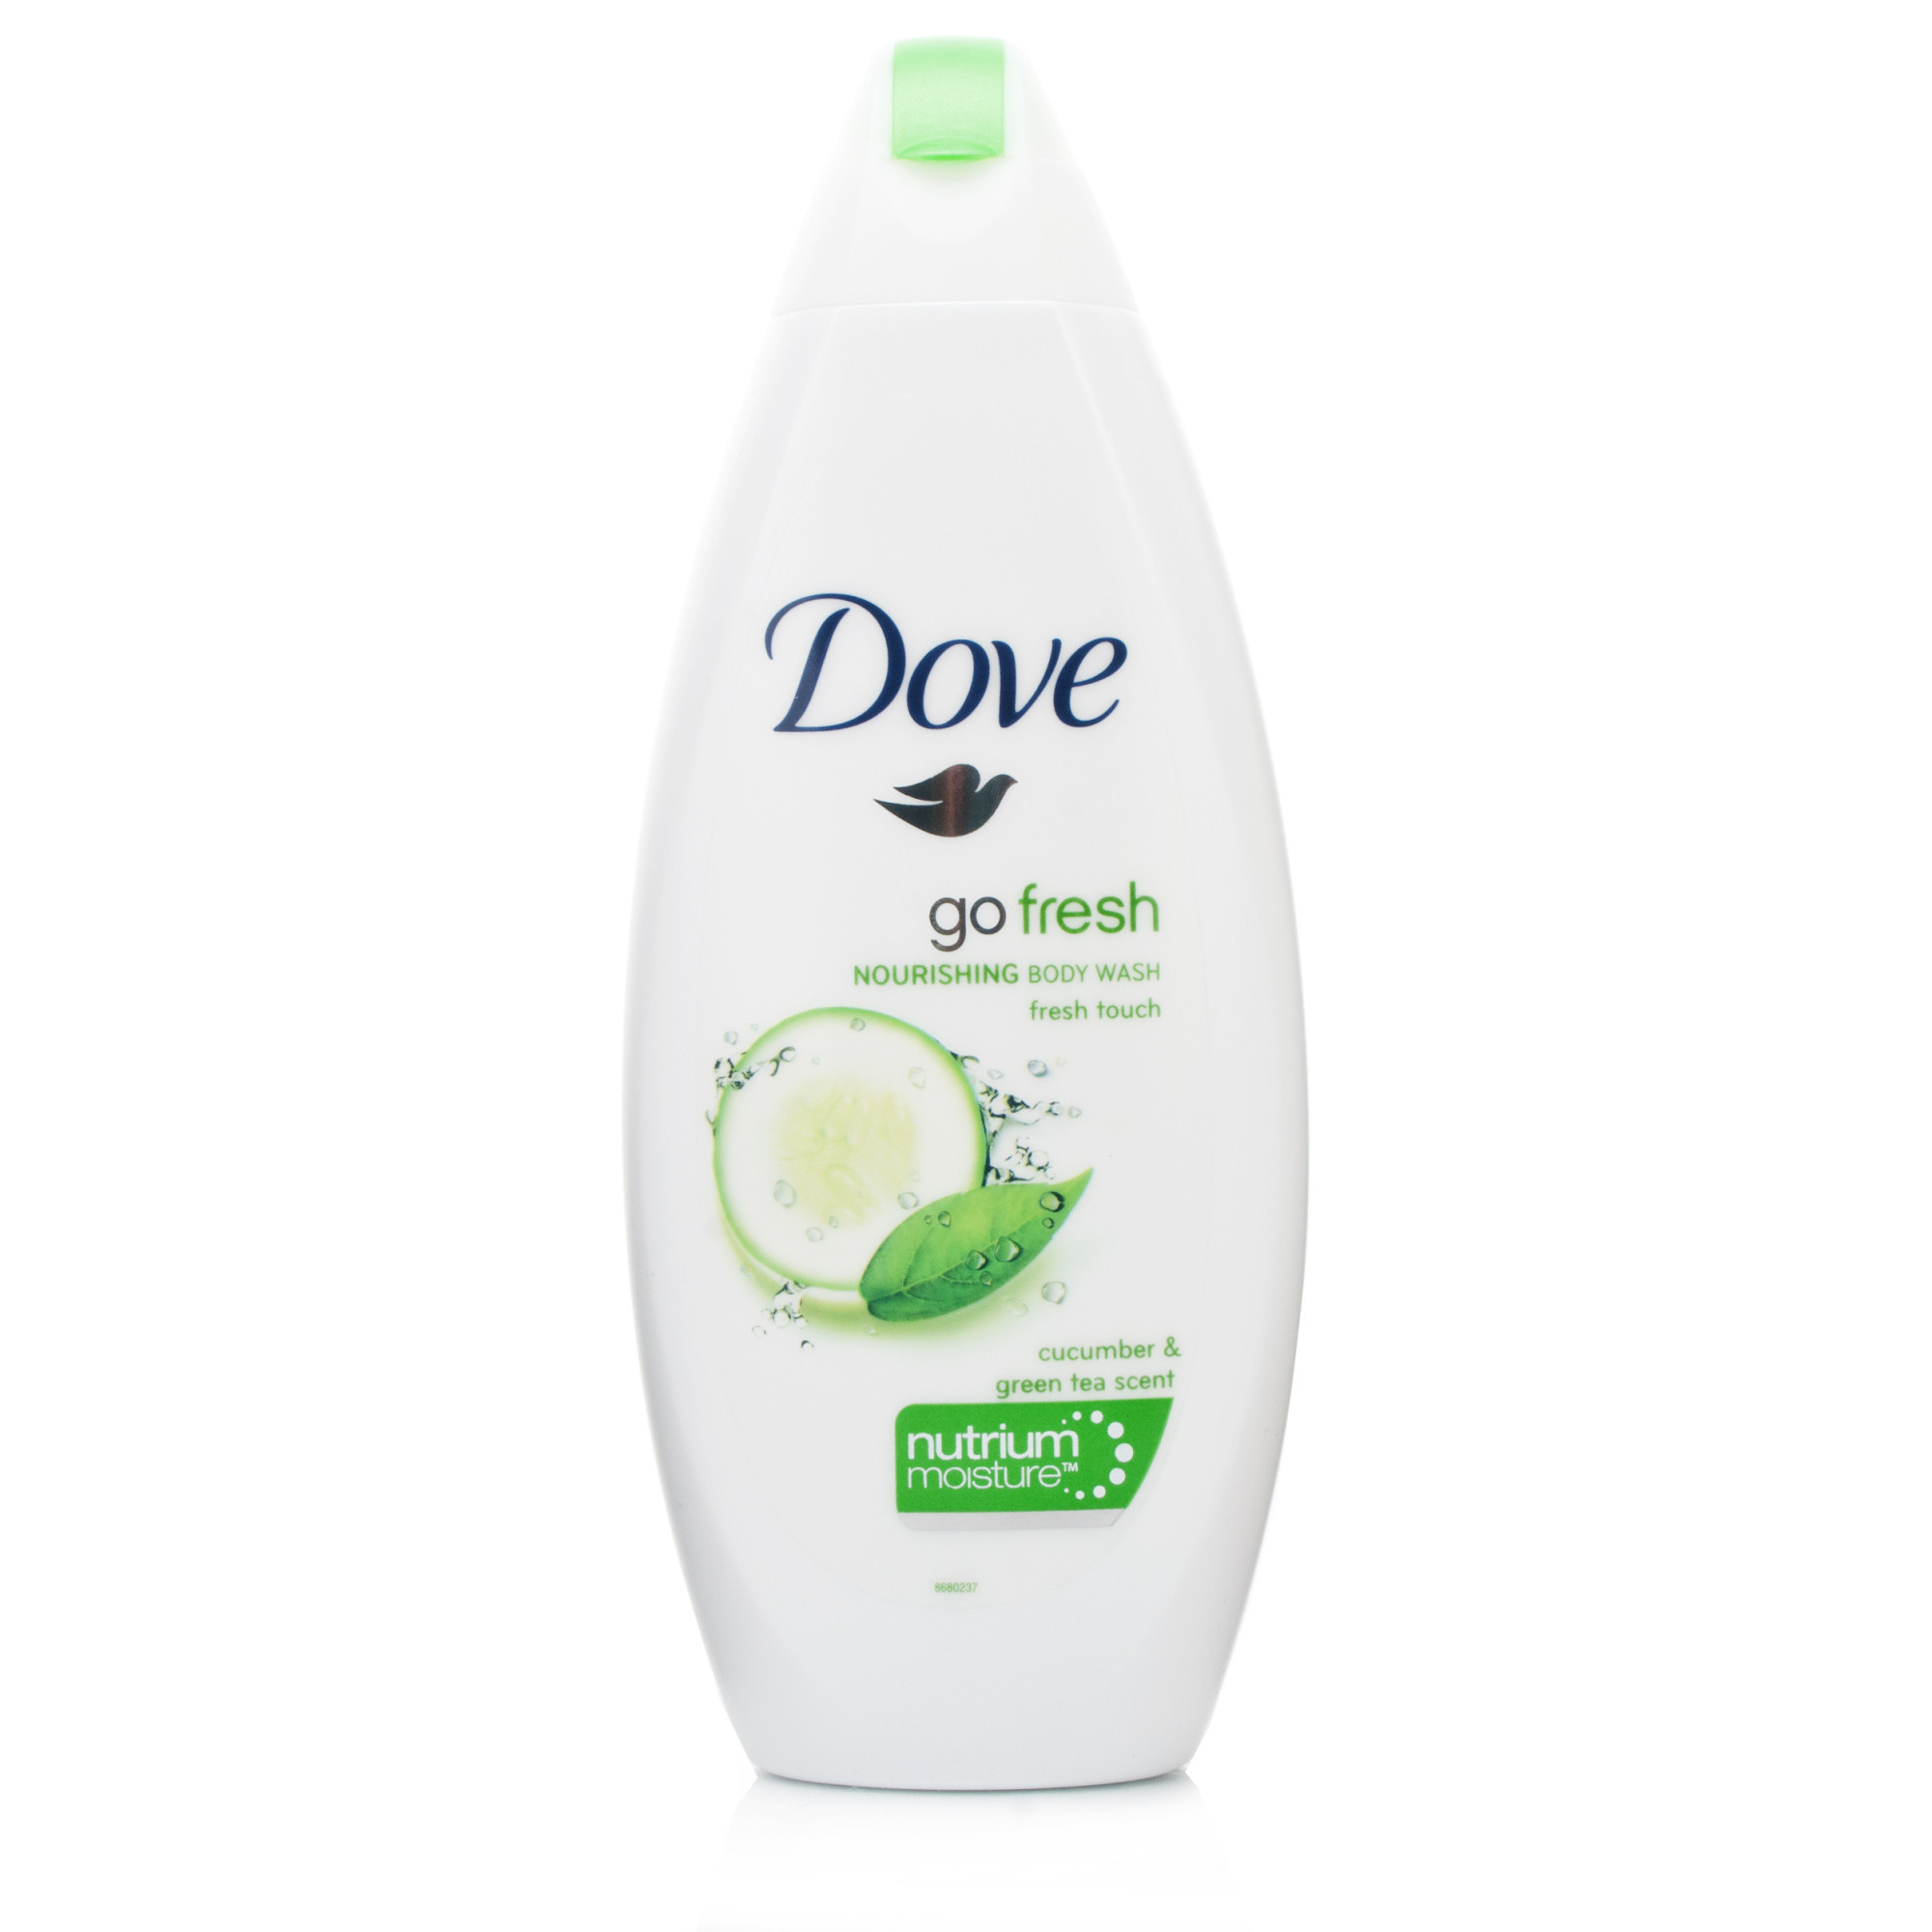 Dove go fresh Fresh Touch Body Wash with Cucumber & Green Tea Scent